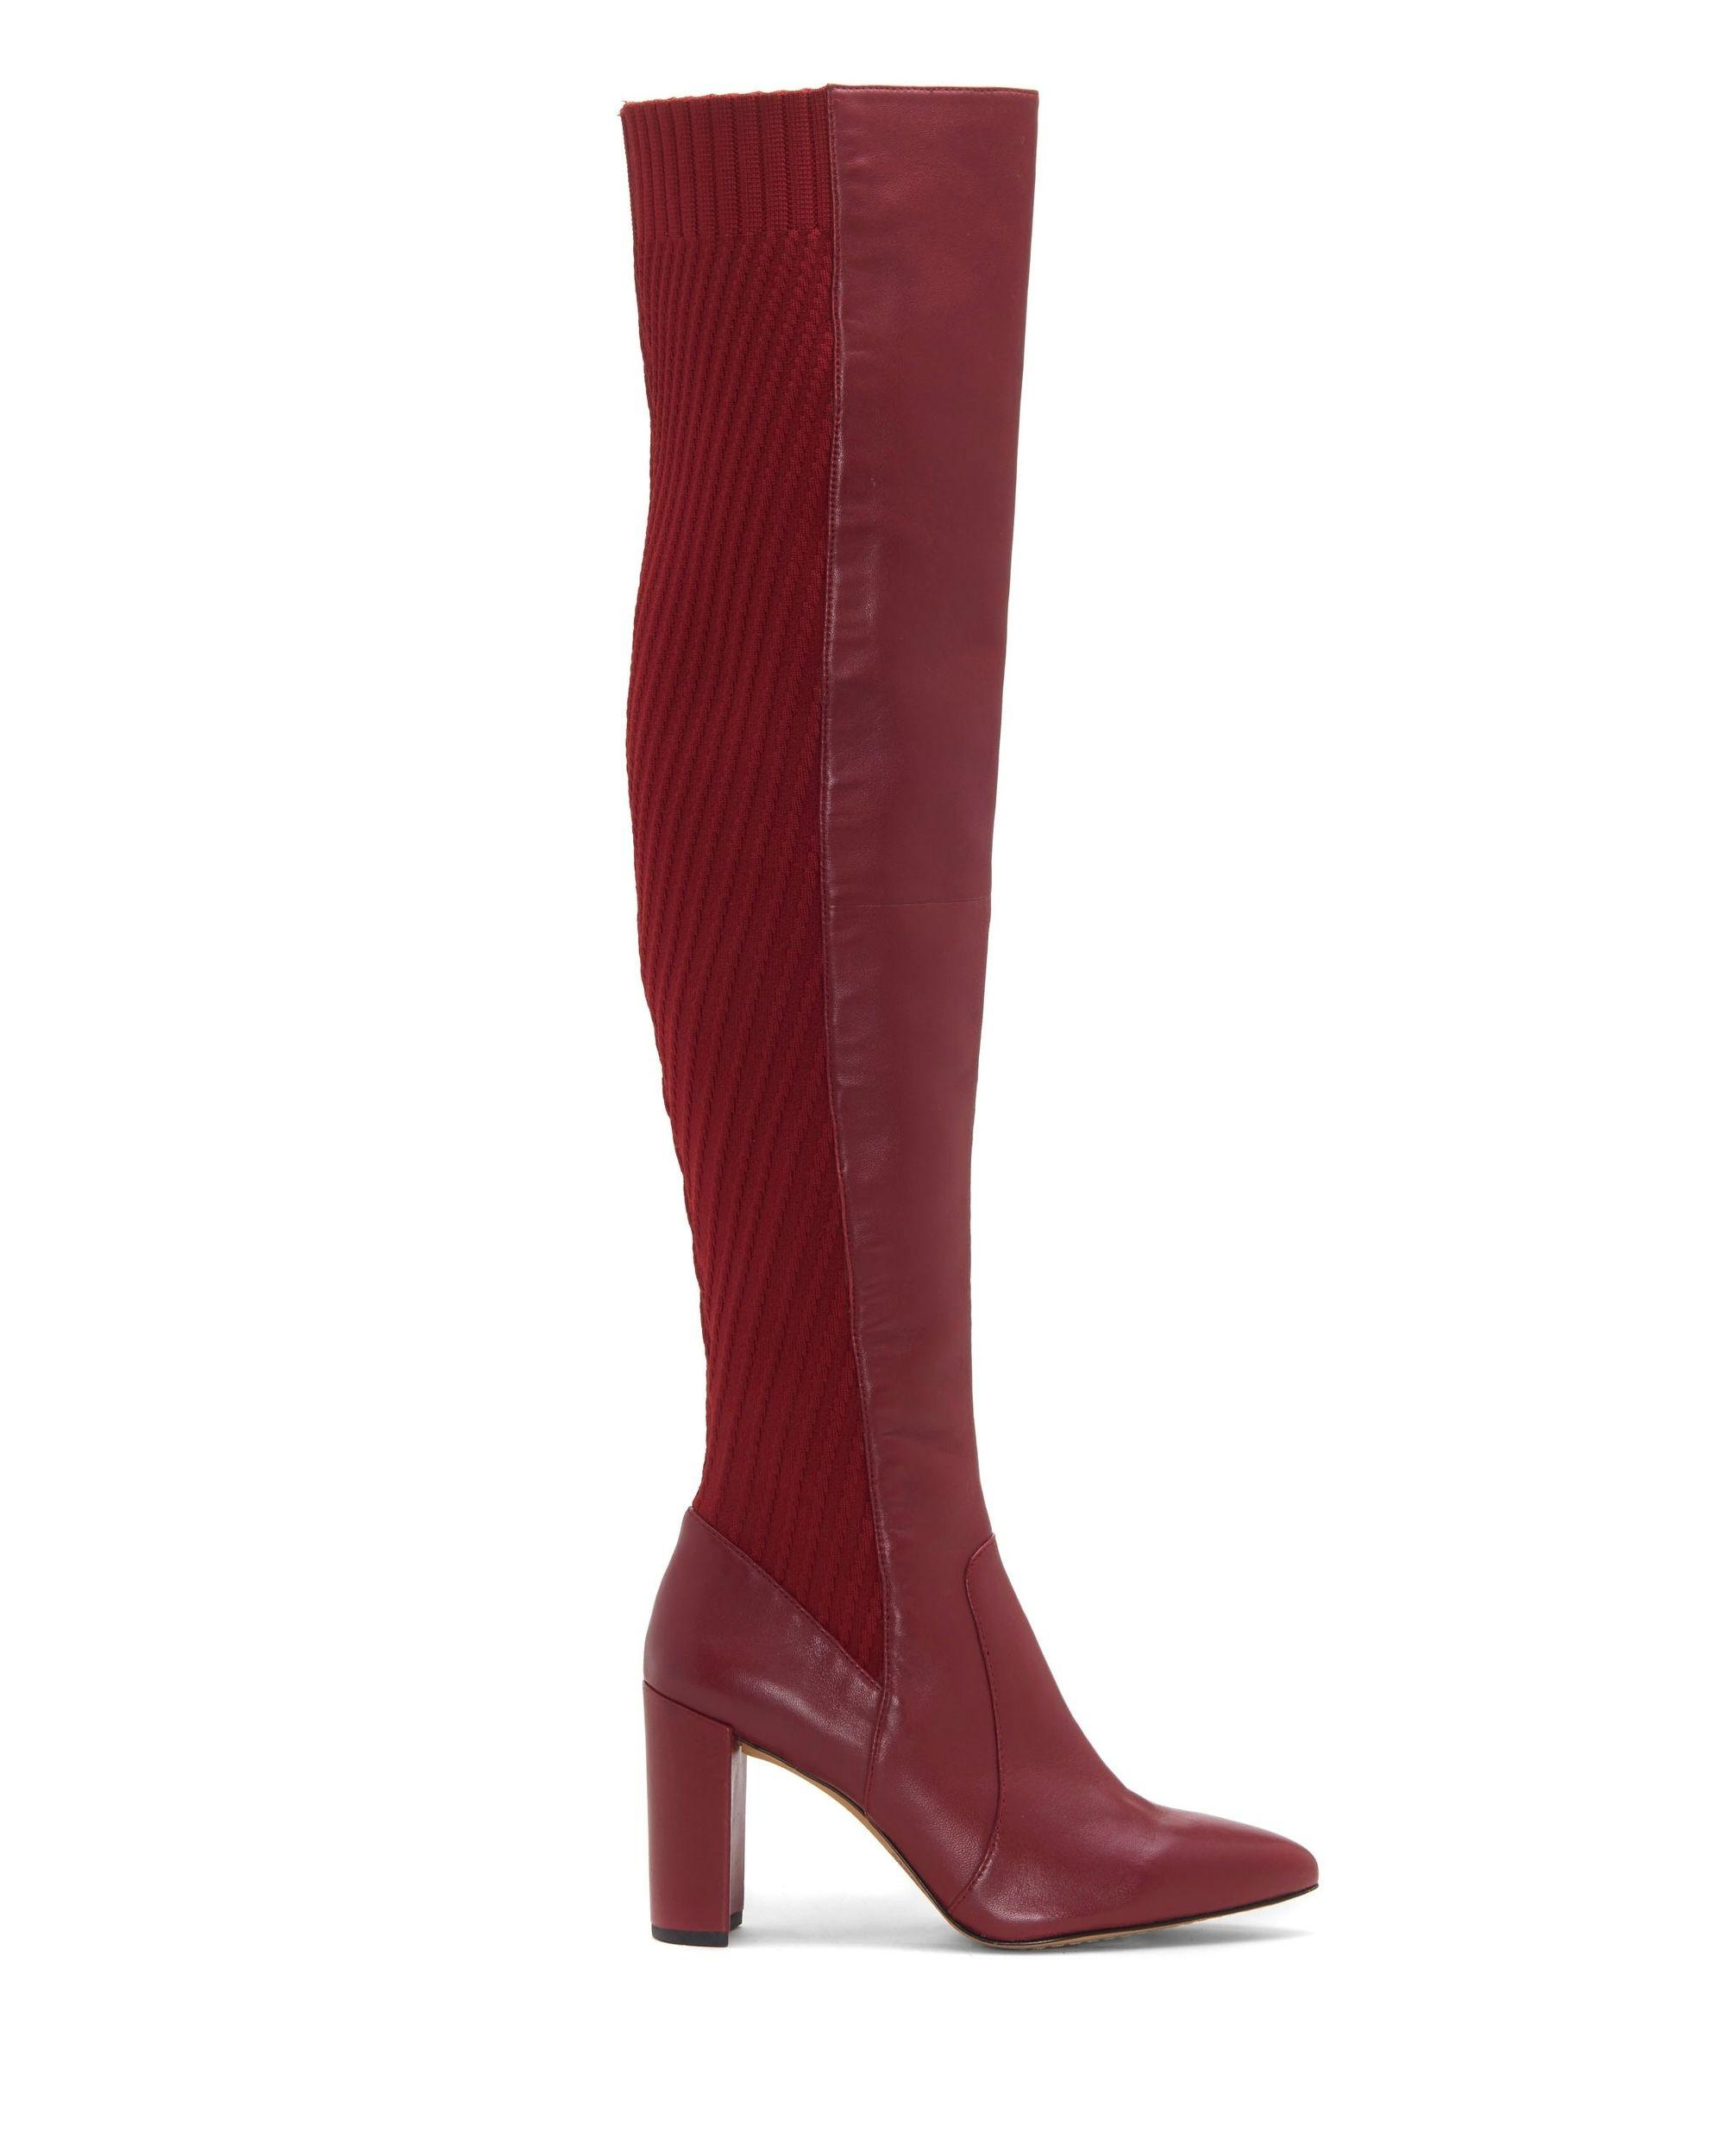 d309ffdb1b6a Lyst - Vince Camuto Majestie – Block-heel Boot in Red - Save 22%